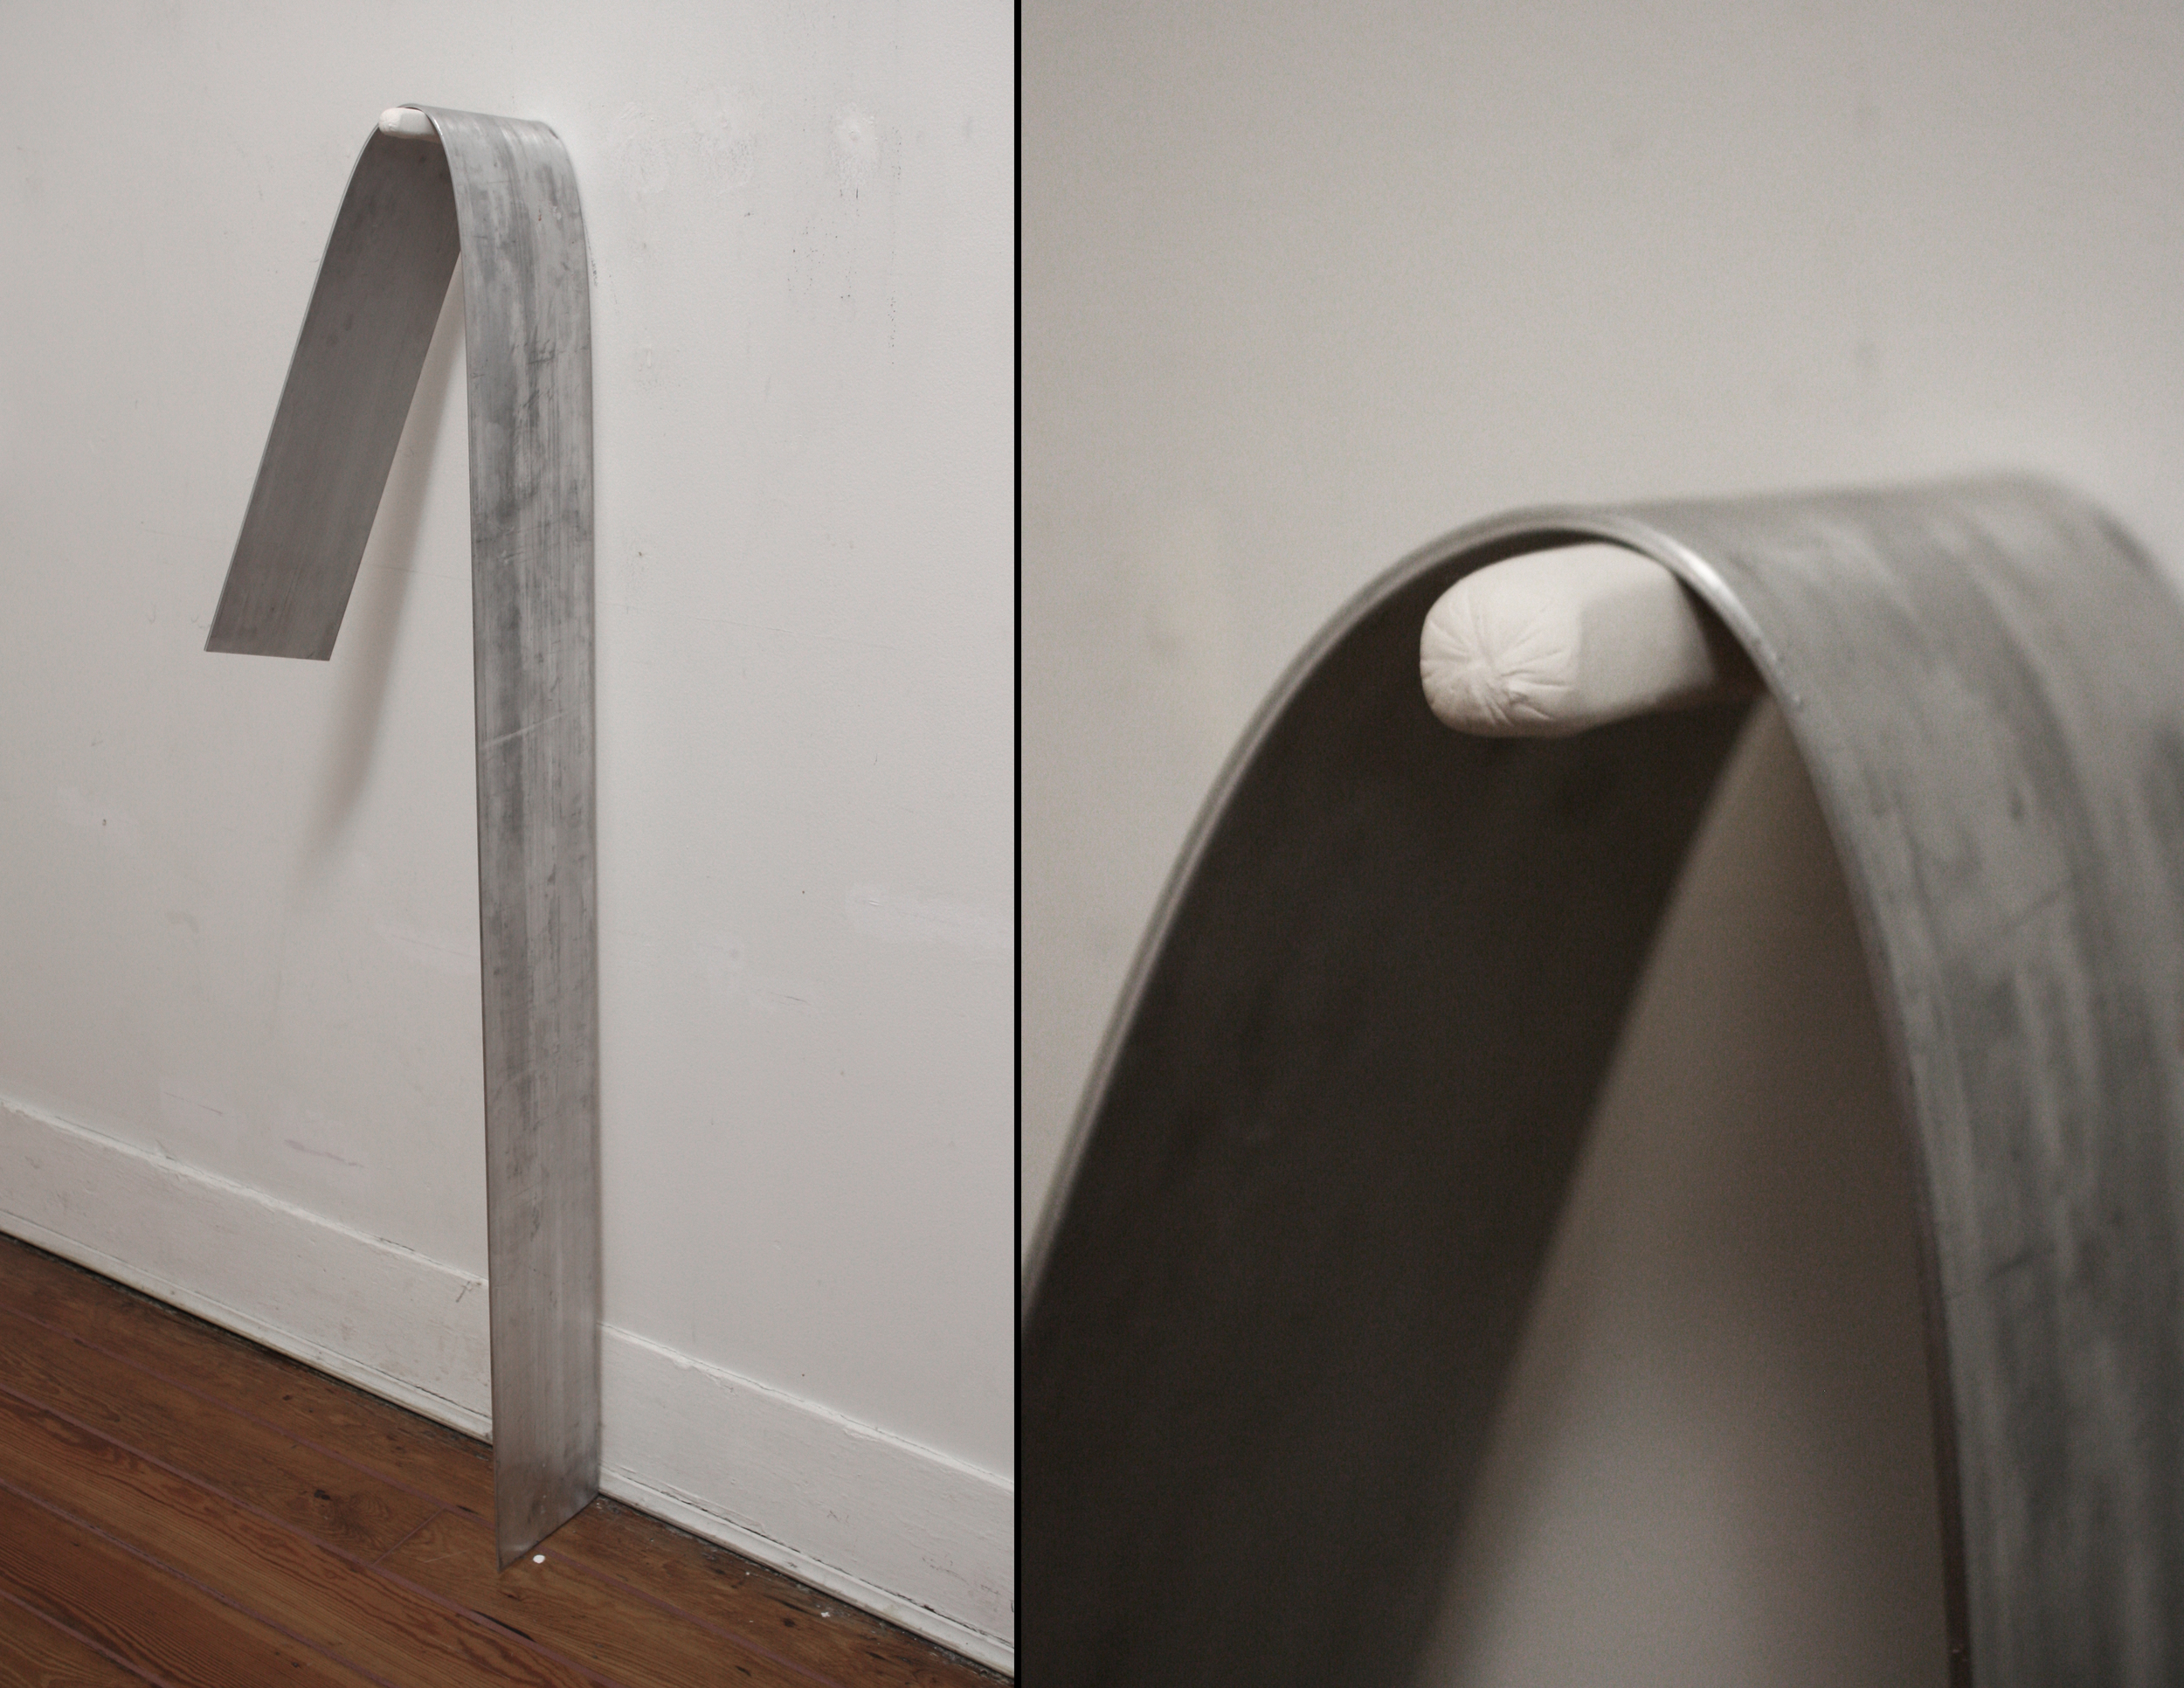 Straight up, Bend   2011 Plaster, aluminum 20 x 48 x 12 inches